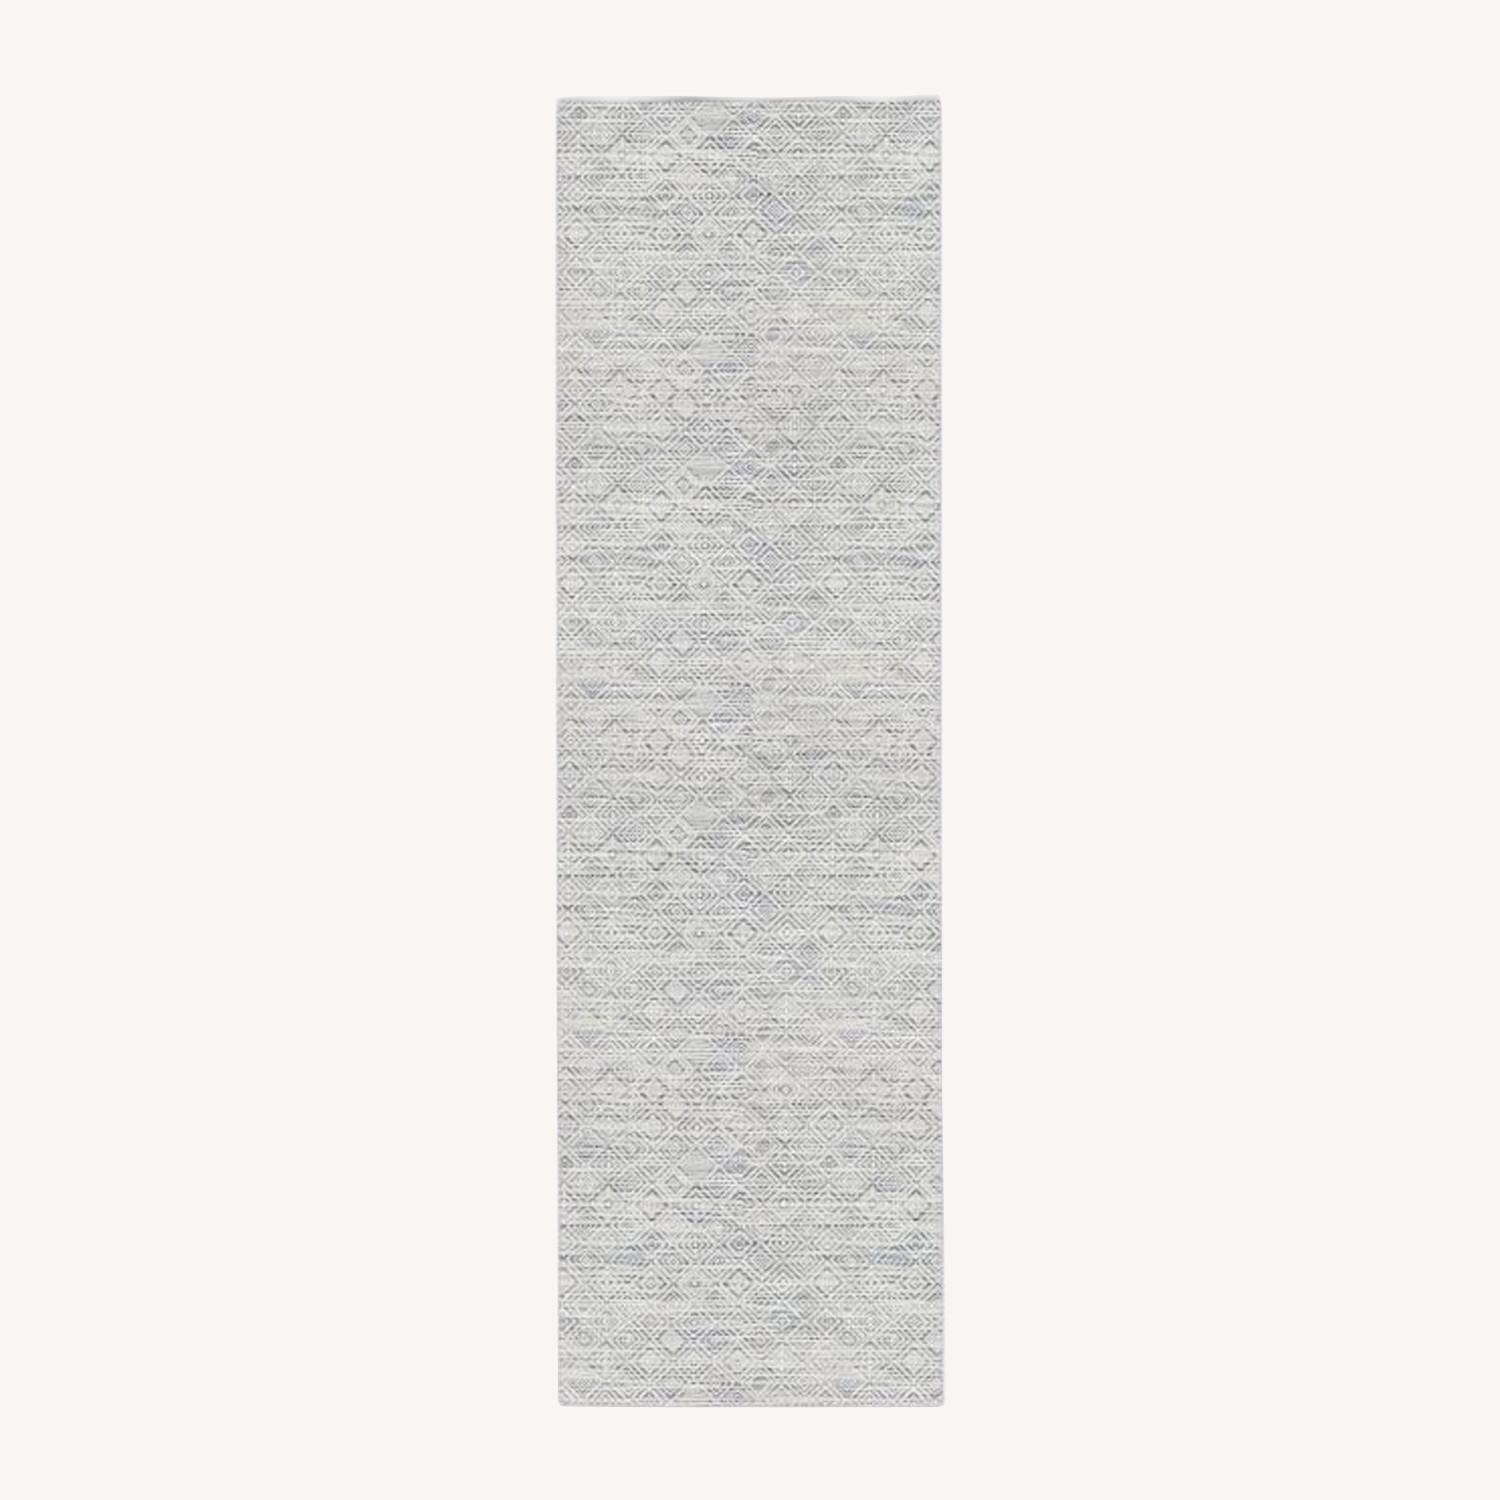 West Elm Chilewich Mosaic Woven Floormat - image-0